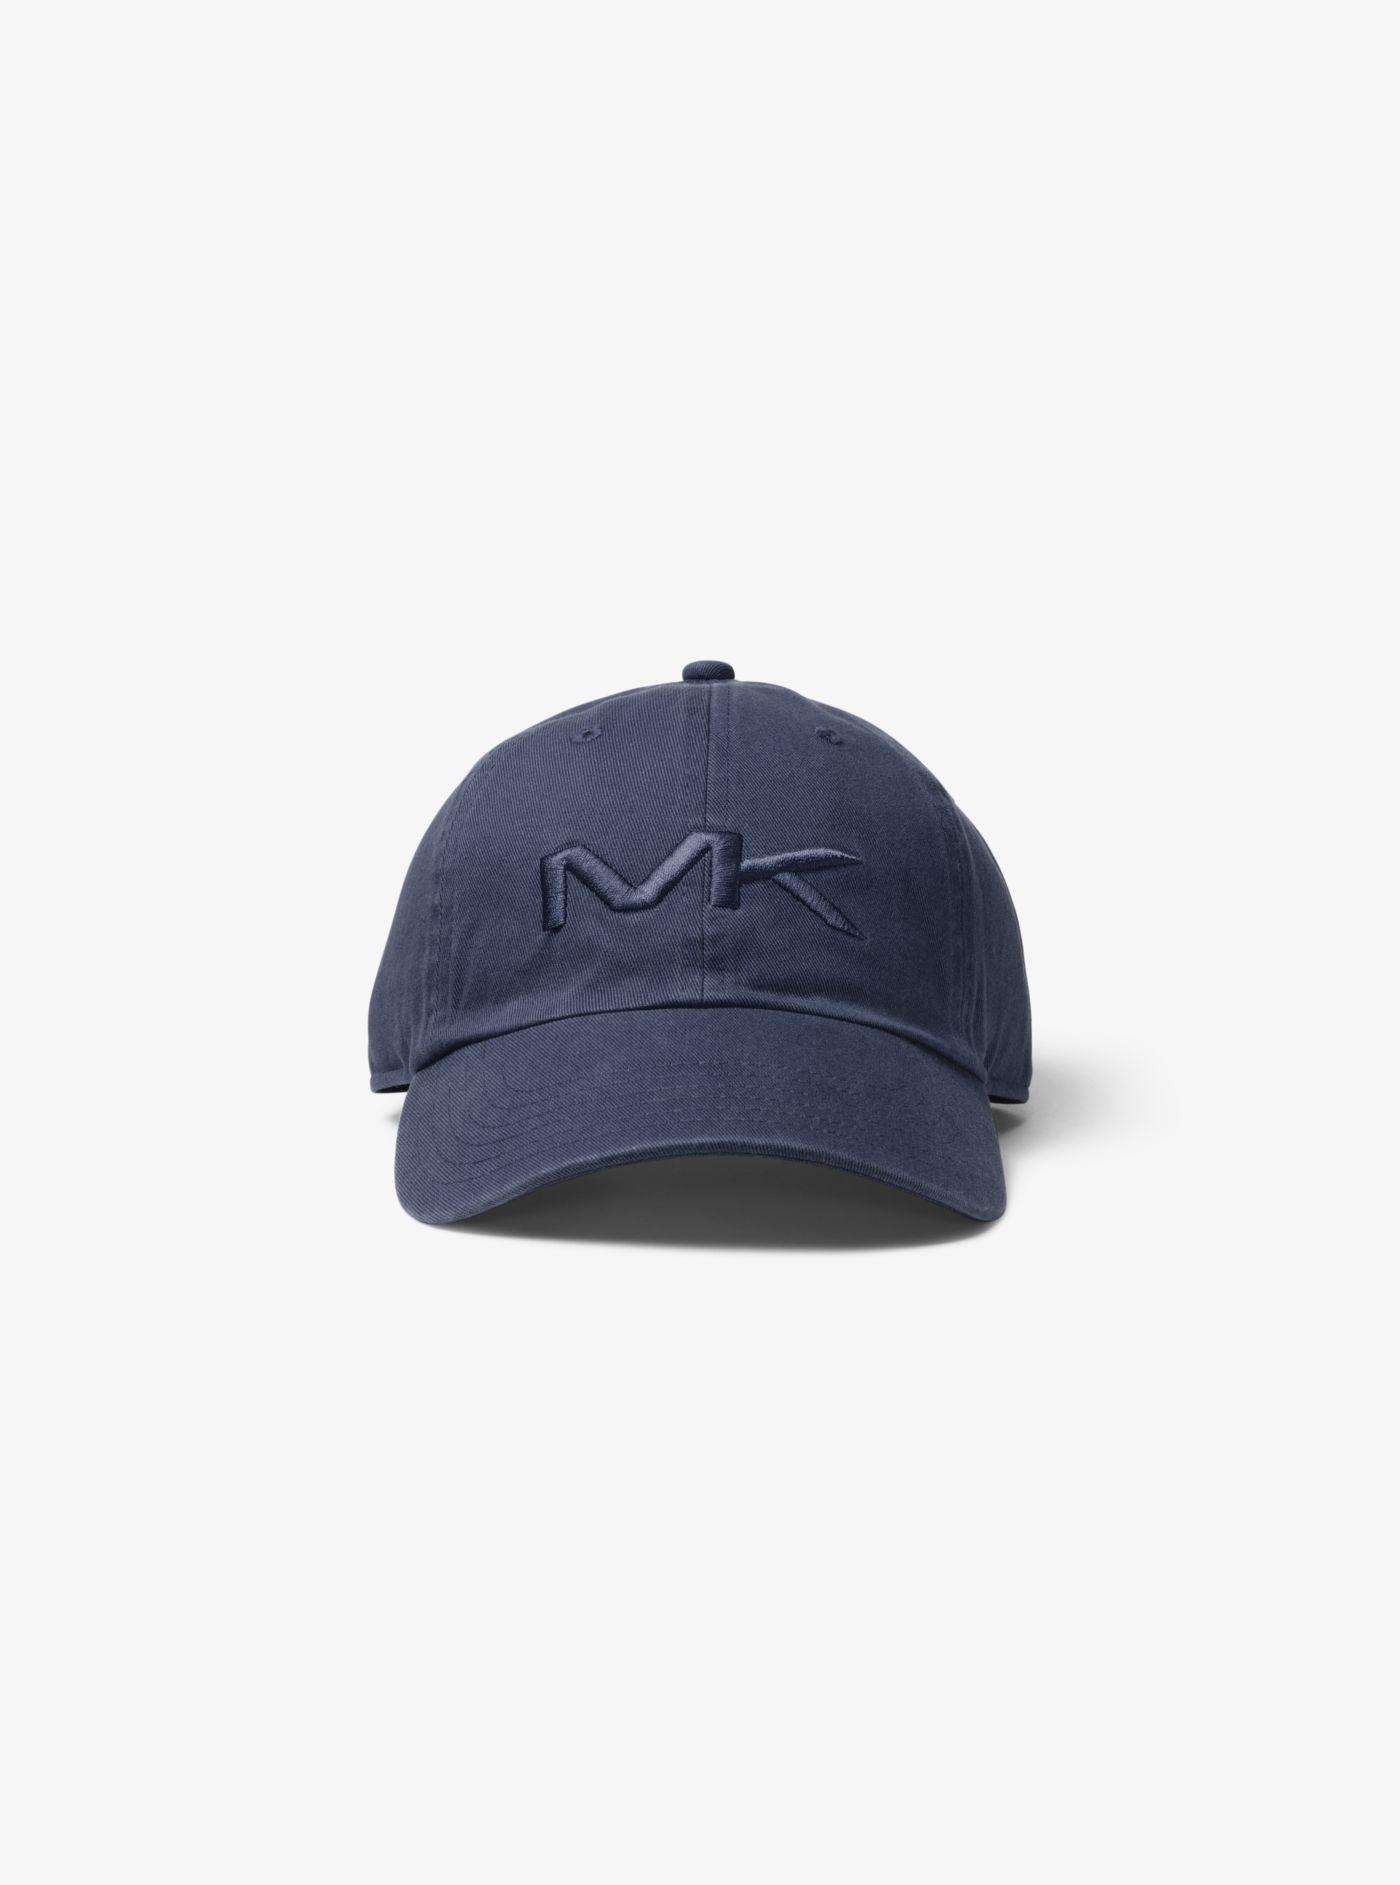 87a6af0a2ef Lyst - Michael Kors Logo Cotton Baseball Hat in Blue for Men